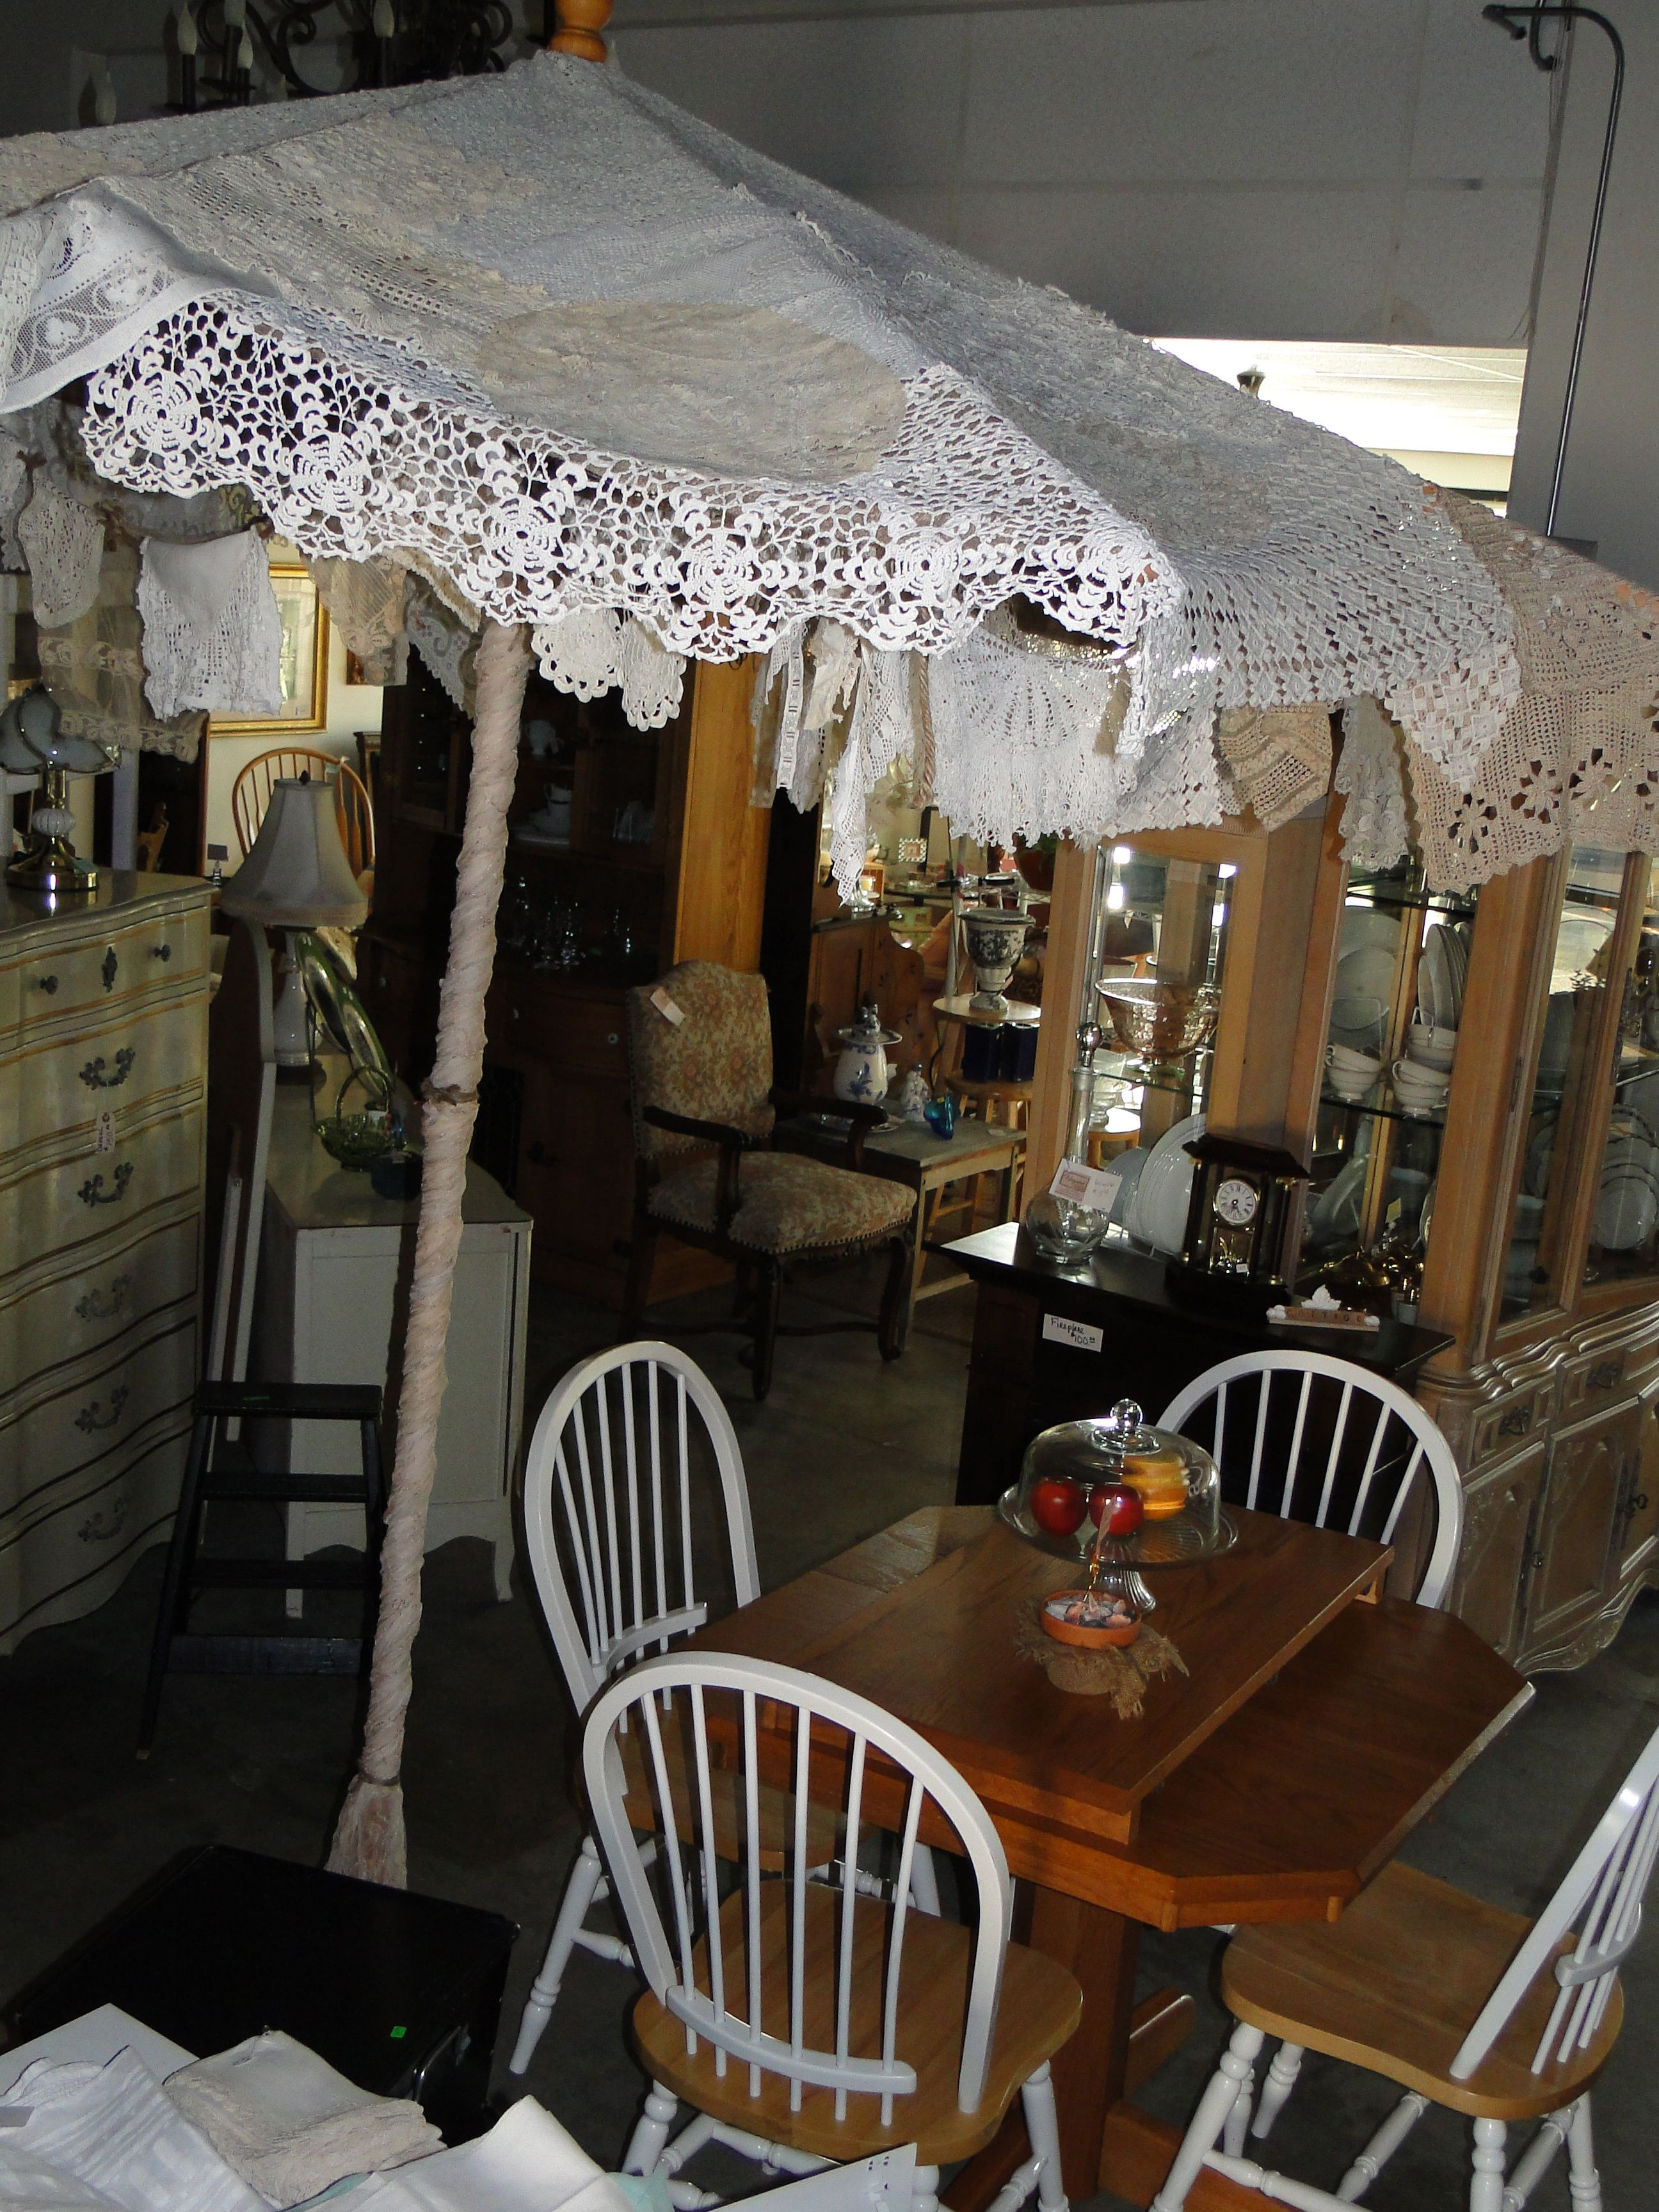 Pin By Upcycled Home Garden On Products Upcycled Outdoor Umbrella Covers Shabby Chic Garden Patio Umbrellas